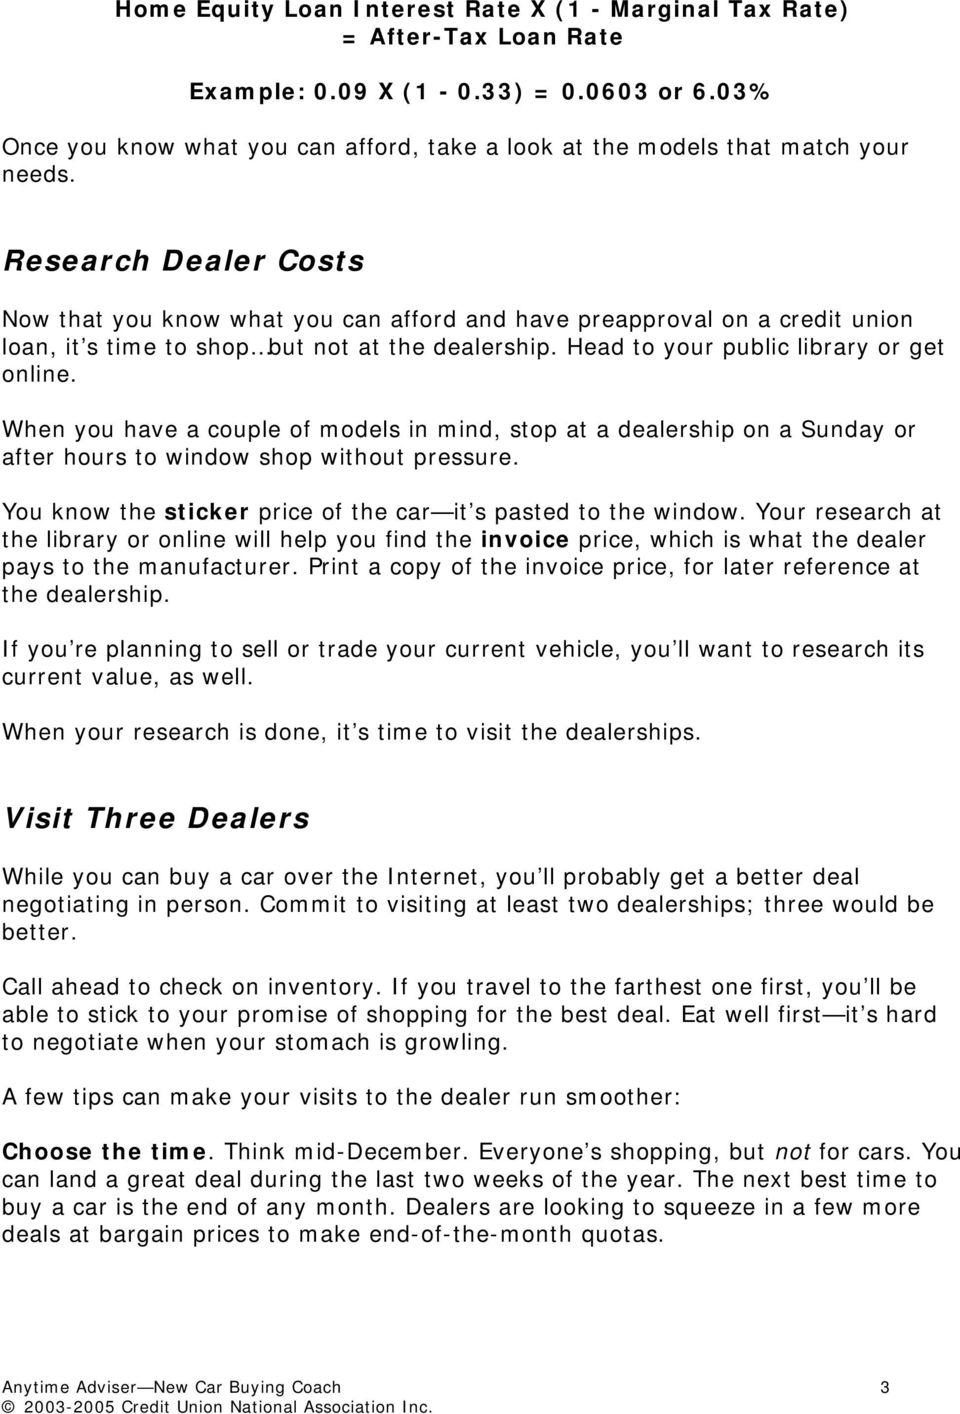 Research Dealer Costs Now that you know what you can afford and have preapproval on a credit union loan, it s time to shop but not at the dealership. Head to your public library or get online.